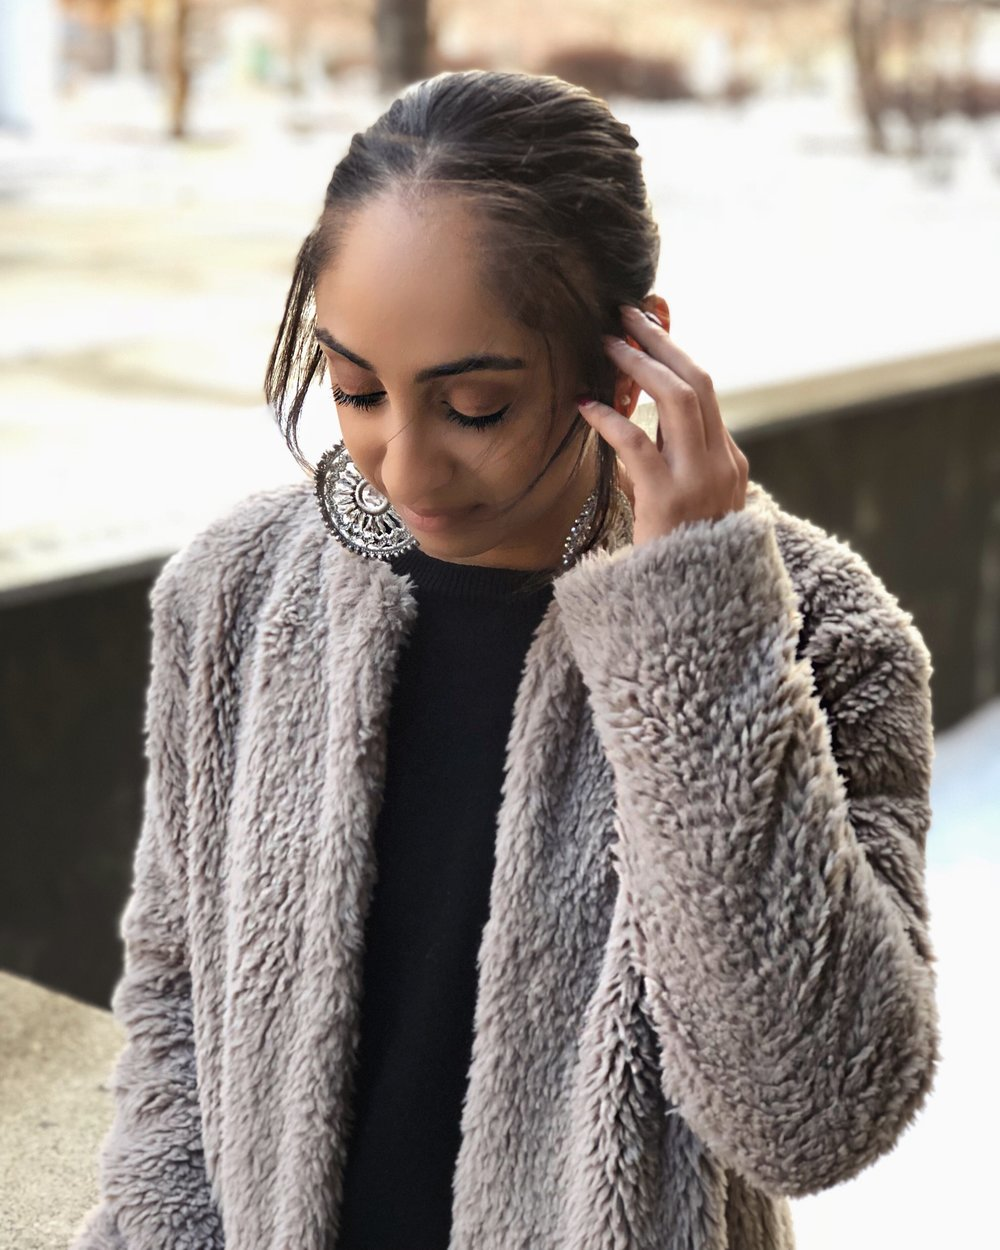 This look is one of my favorites because of how chic it is, and we all know by now how much I love black and grey. My coat is from Nordstrom Rack, my sweater is from Forever 21, my jeans are form 7 For All Mankind, booties are from Nordstrom Rack, and earrings are from Tj Maxx.